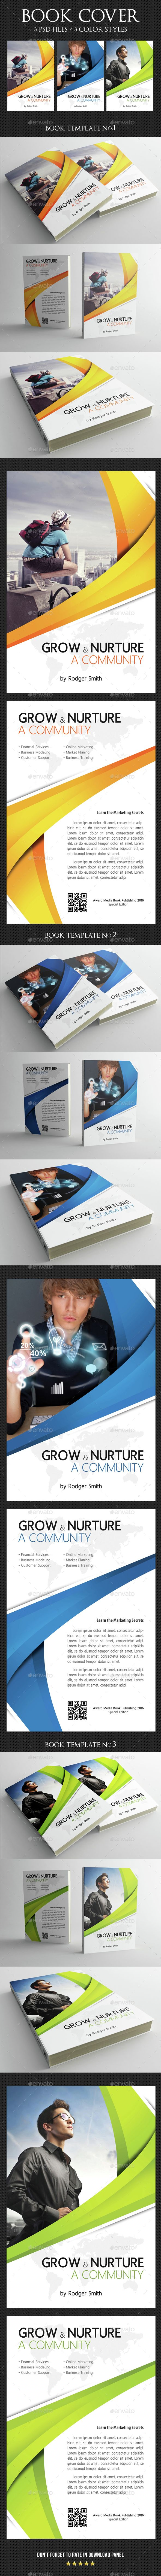 Book Cover Template 07 — Photoshop PSD #story #modern • Available here → https://graphicriver.net/item/book-cover-template-07/15164063?ref=pxcr